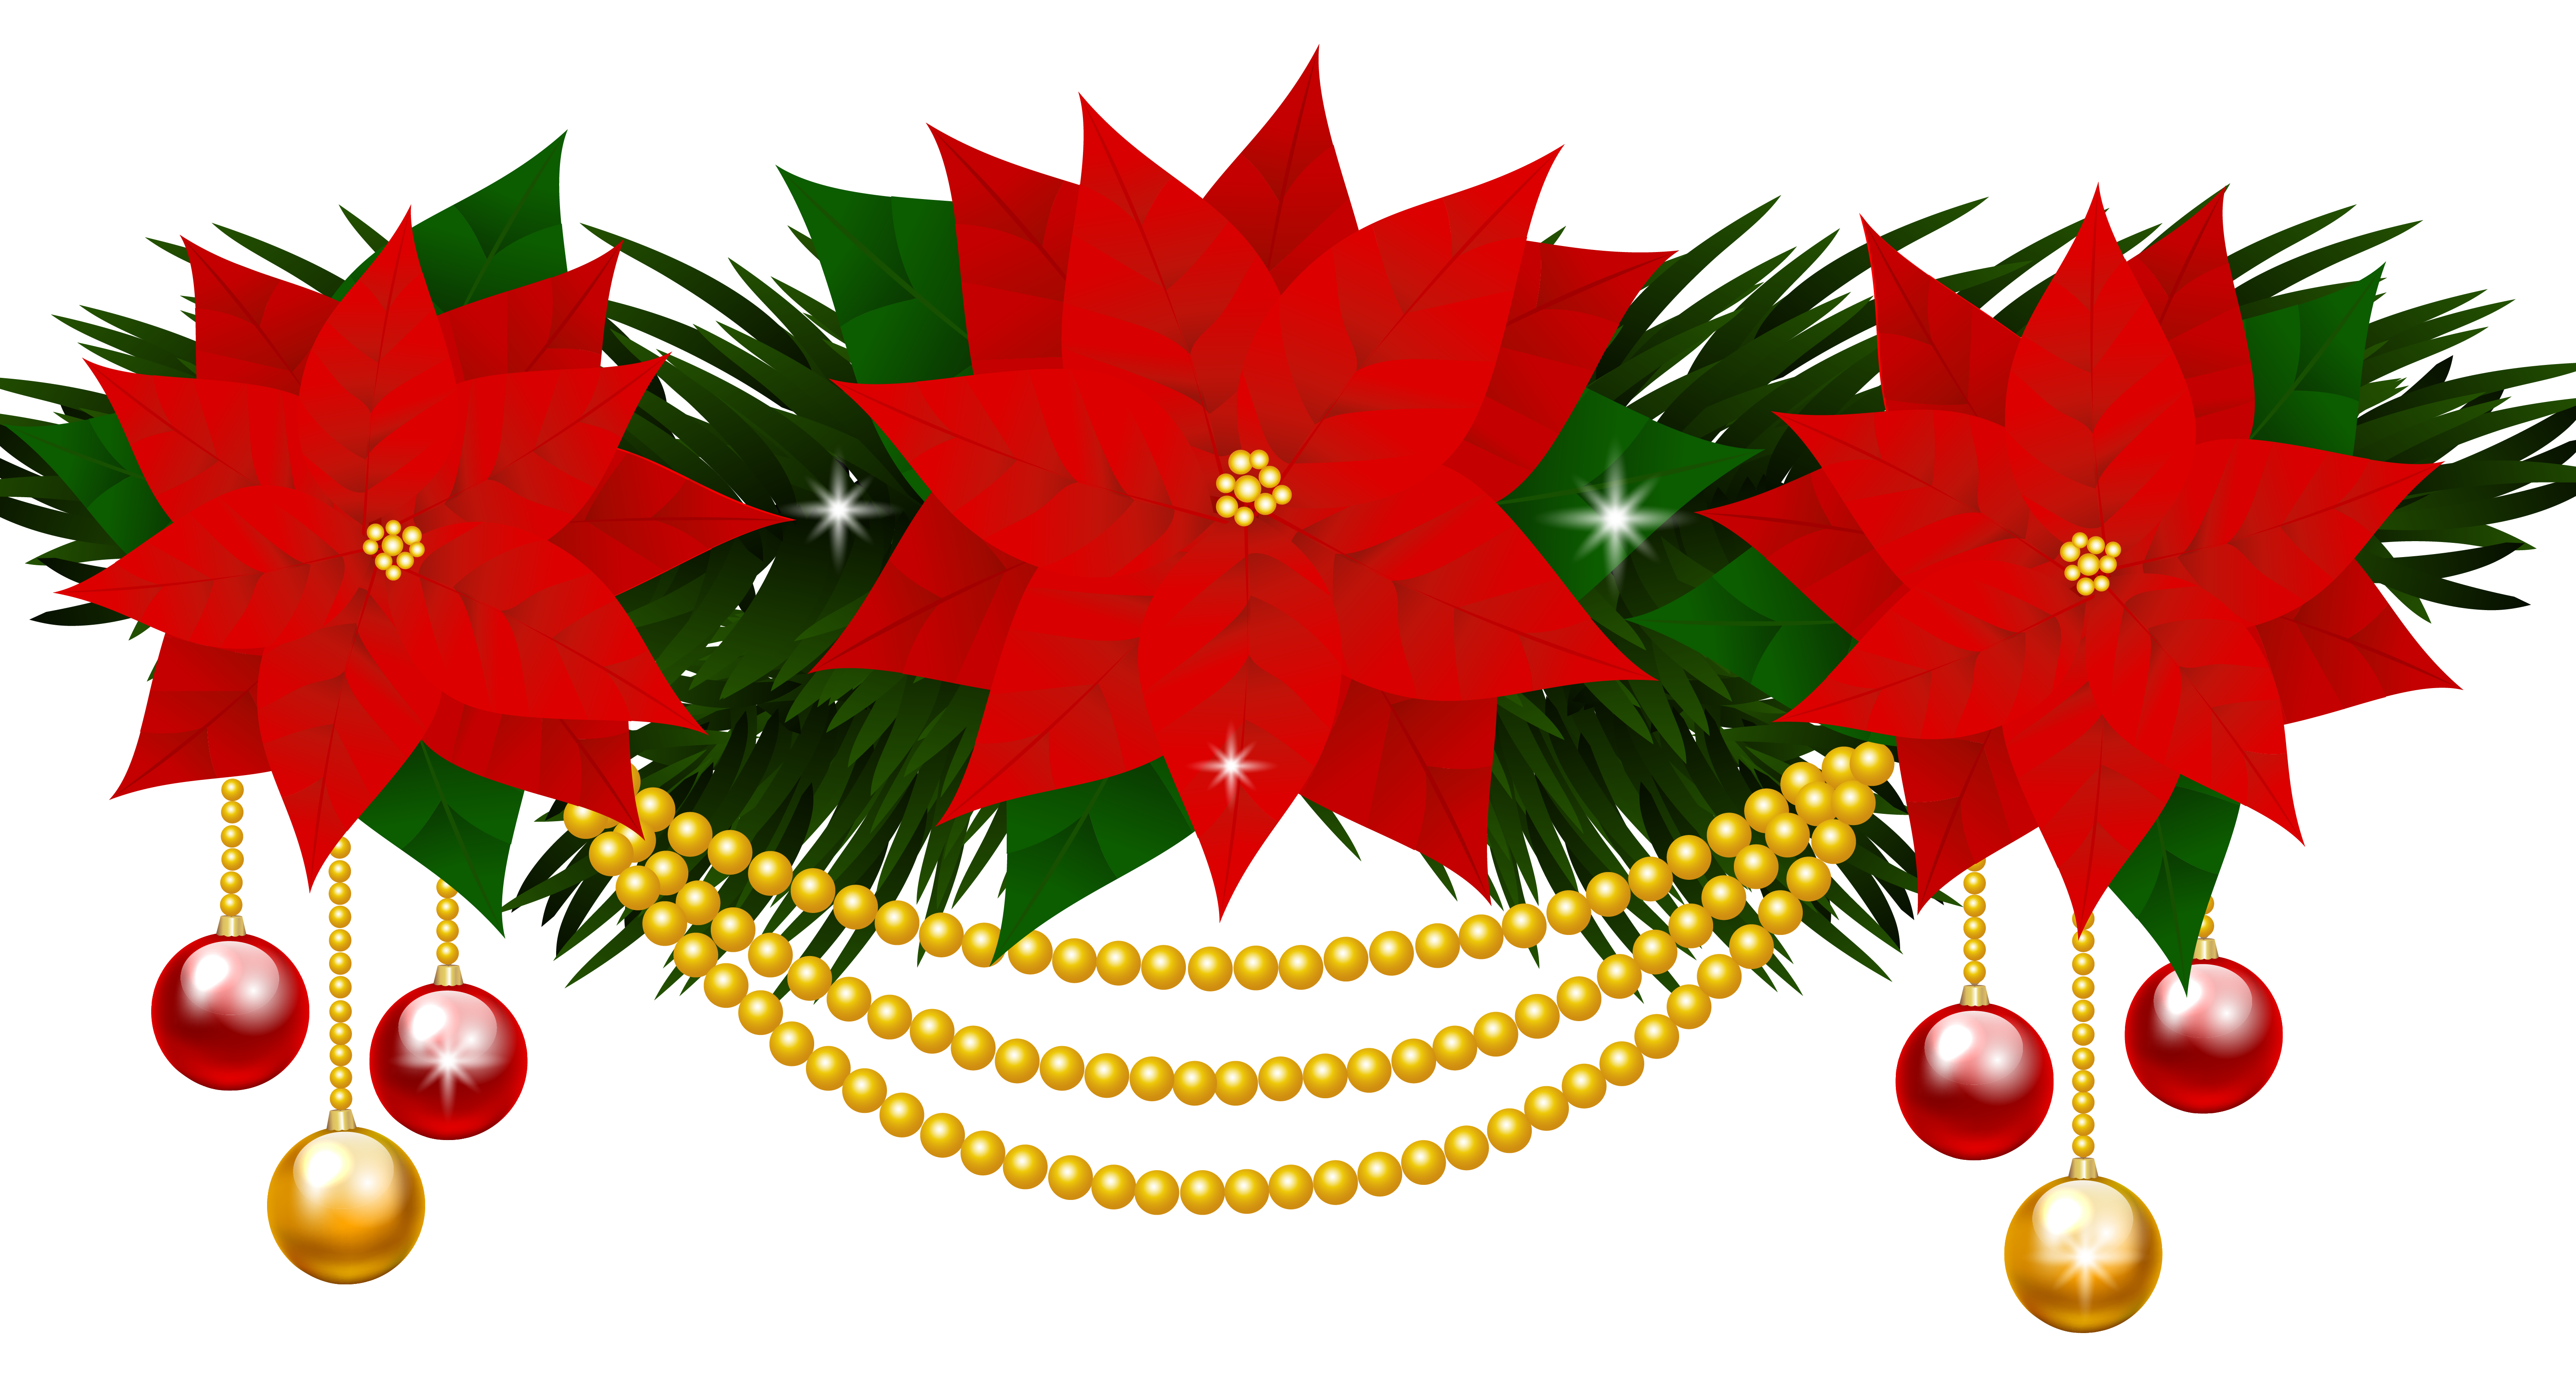 Christmas flower clipart image freeuse stock Poinsettias Decoration PNG Clipart Image | Gallery Yopriceville ... image freeuse stock